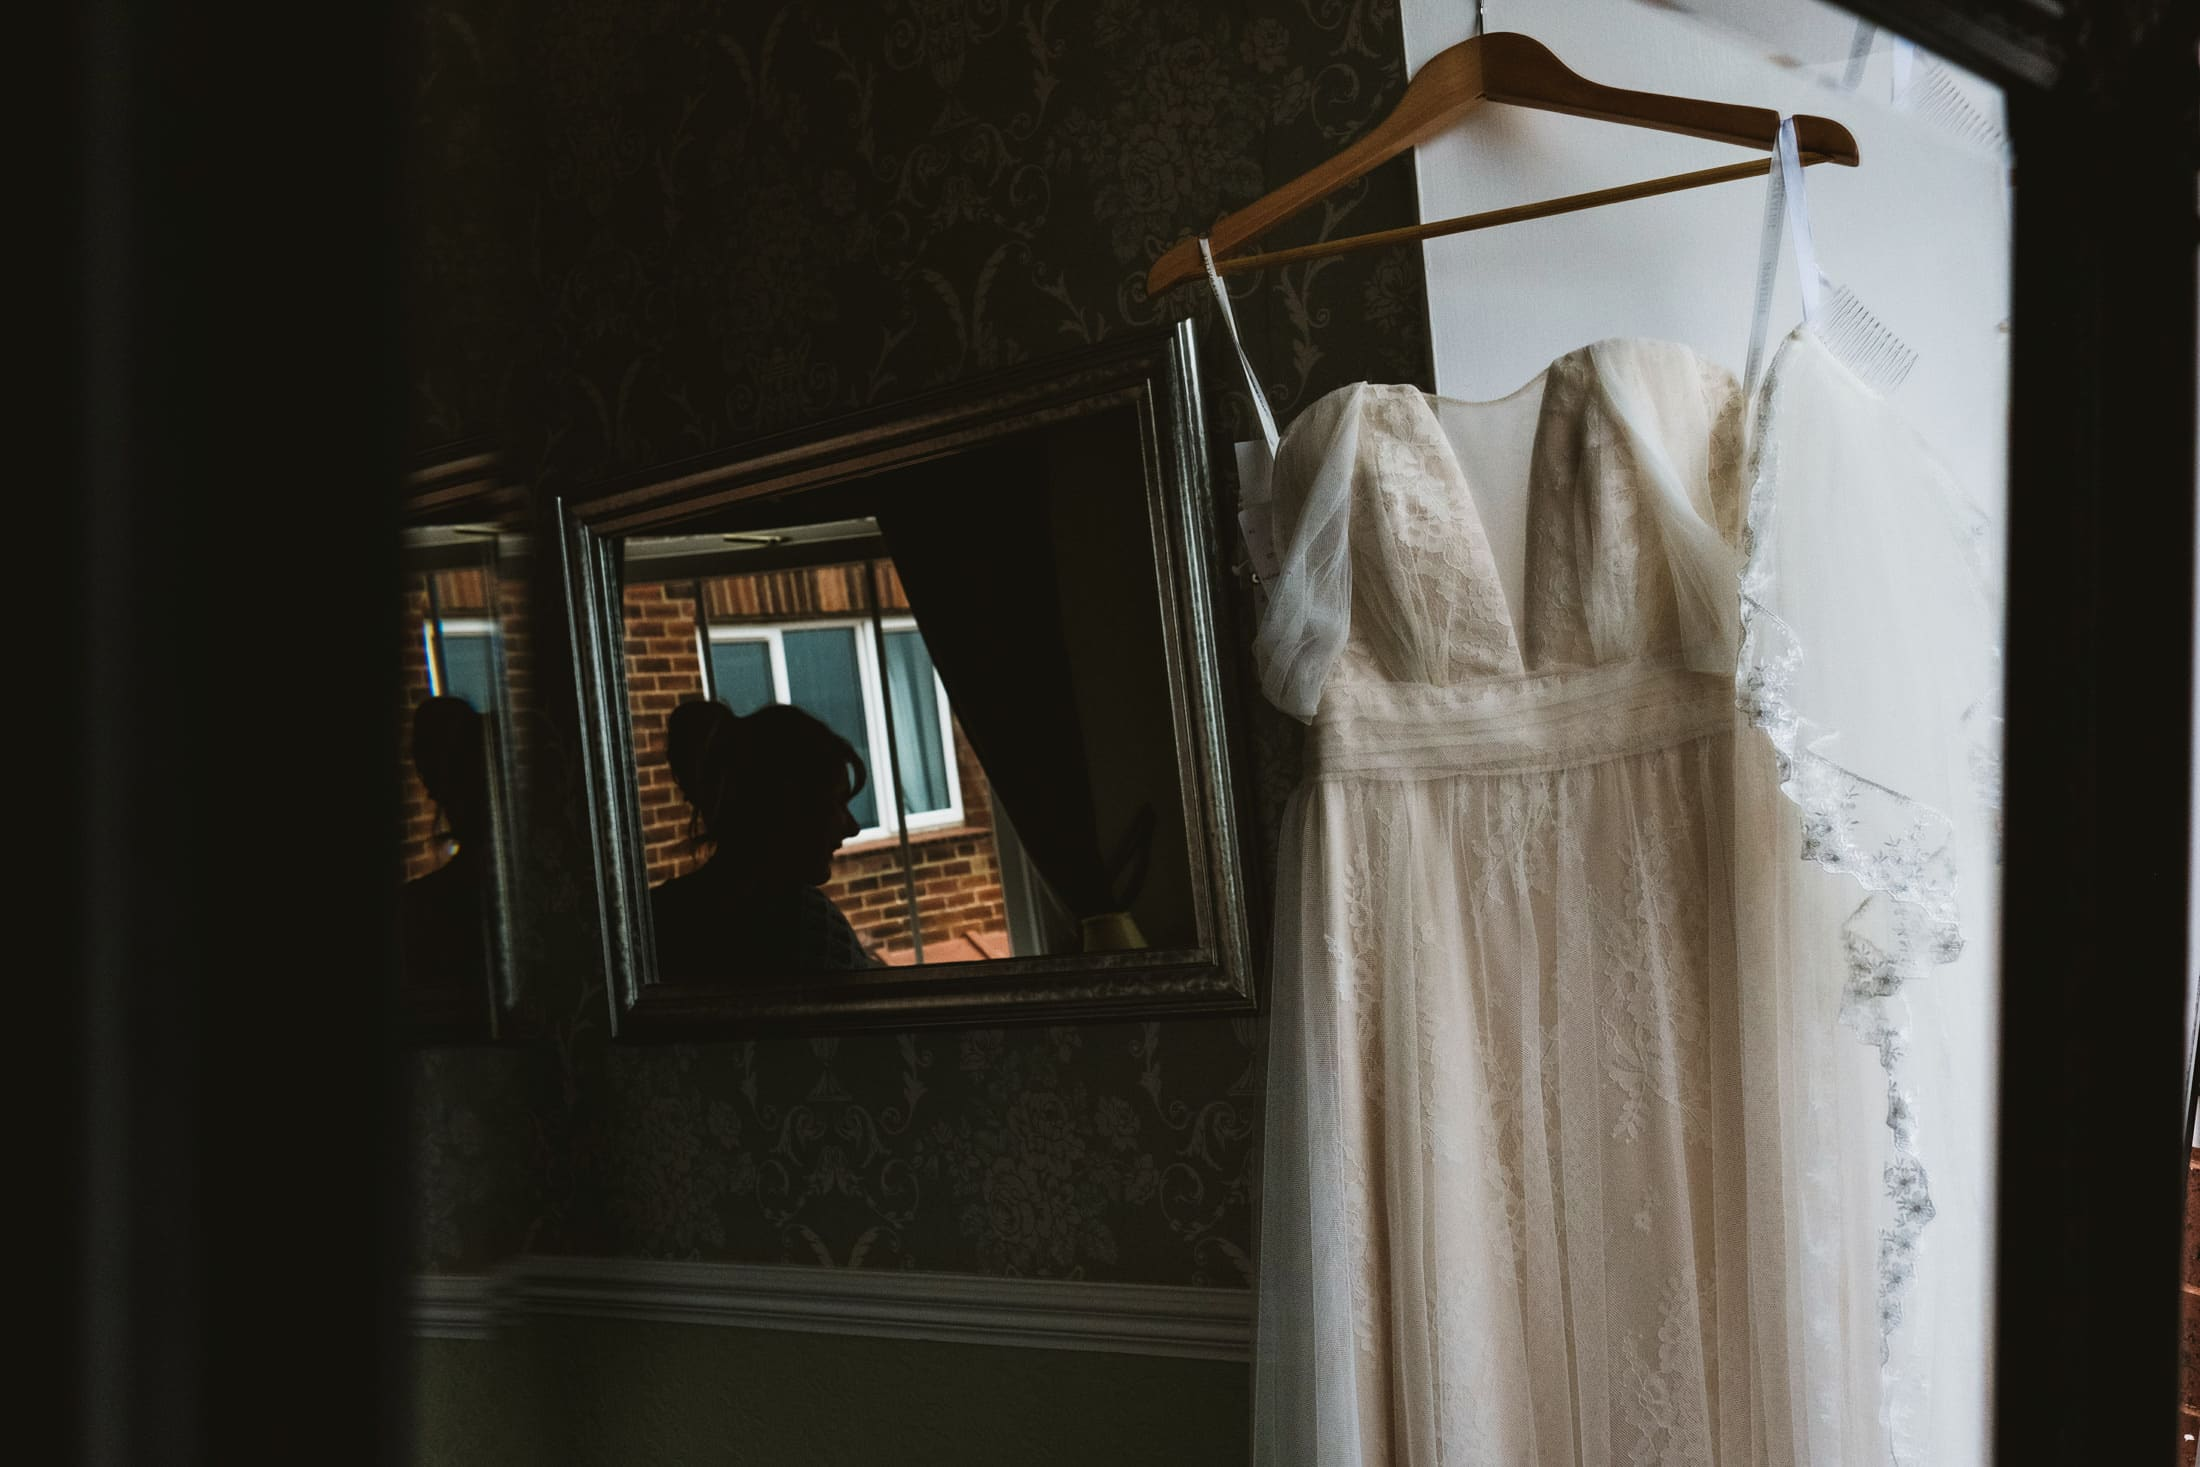 Wedding dress and silhouette in mirror